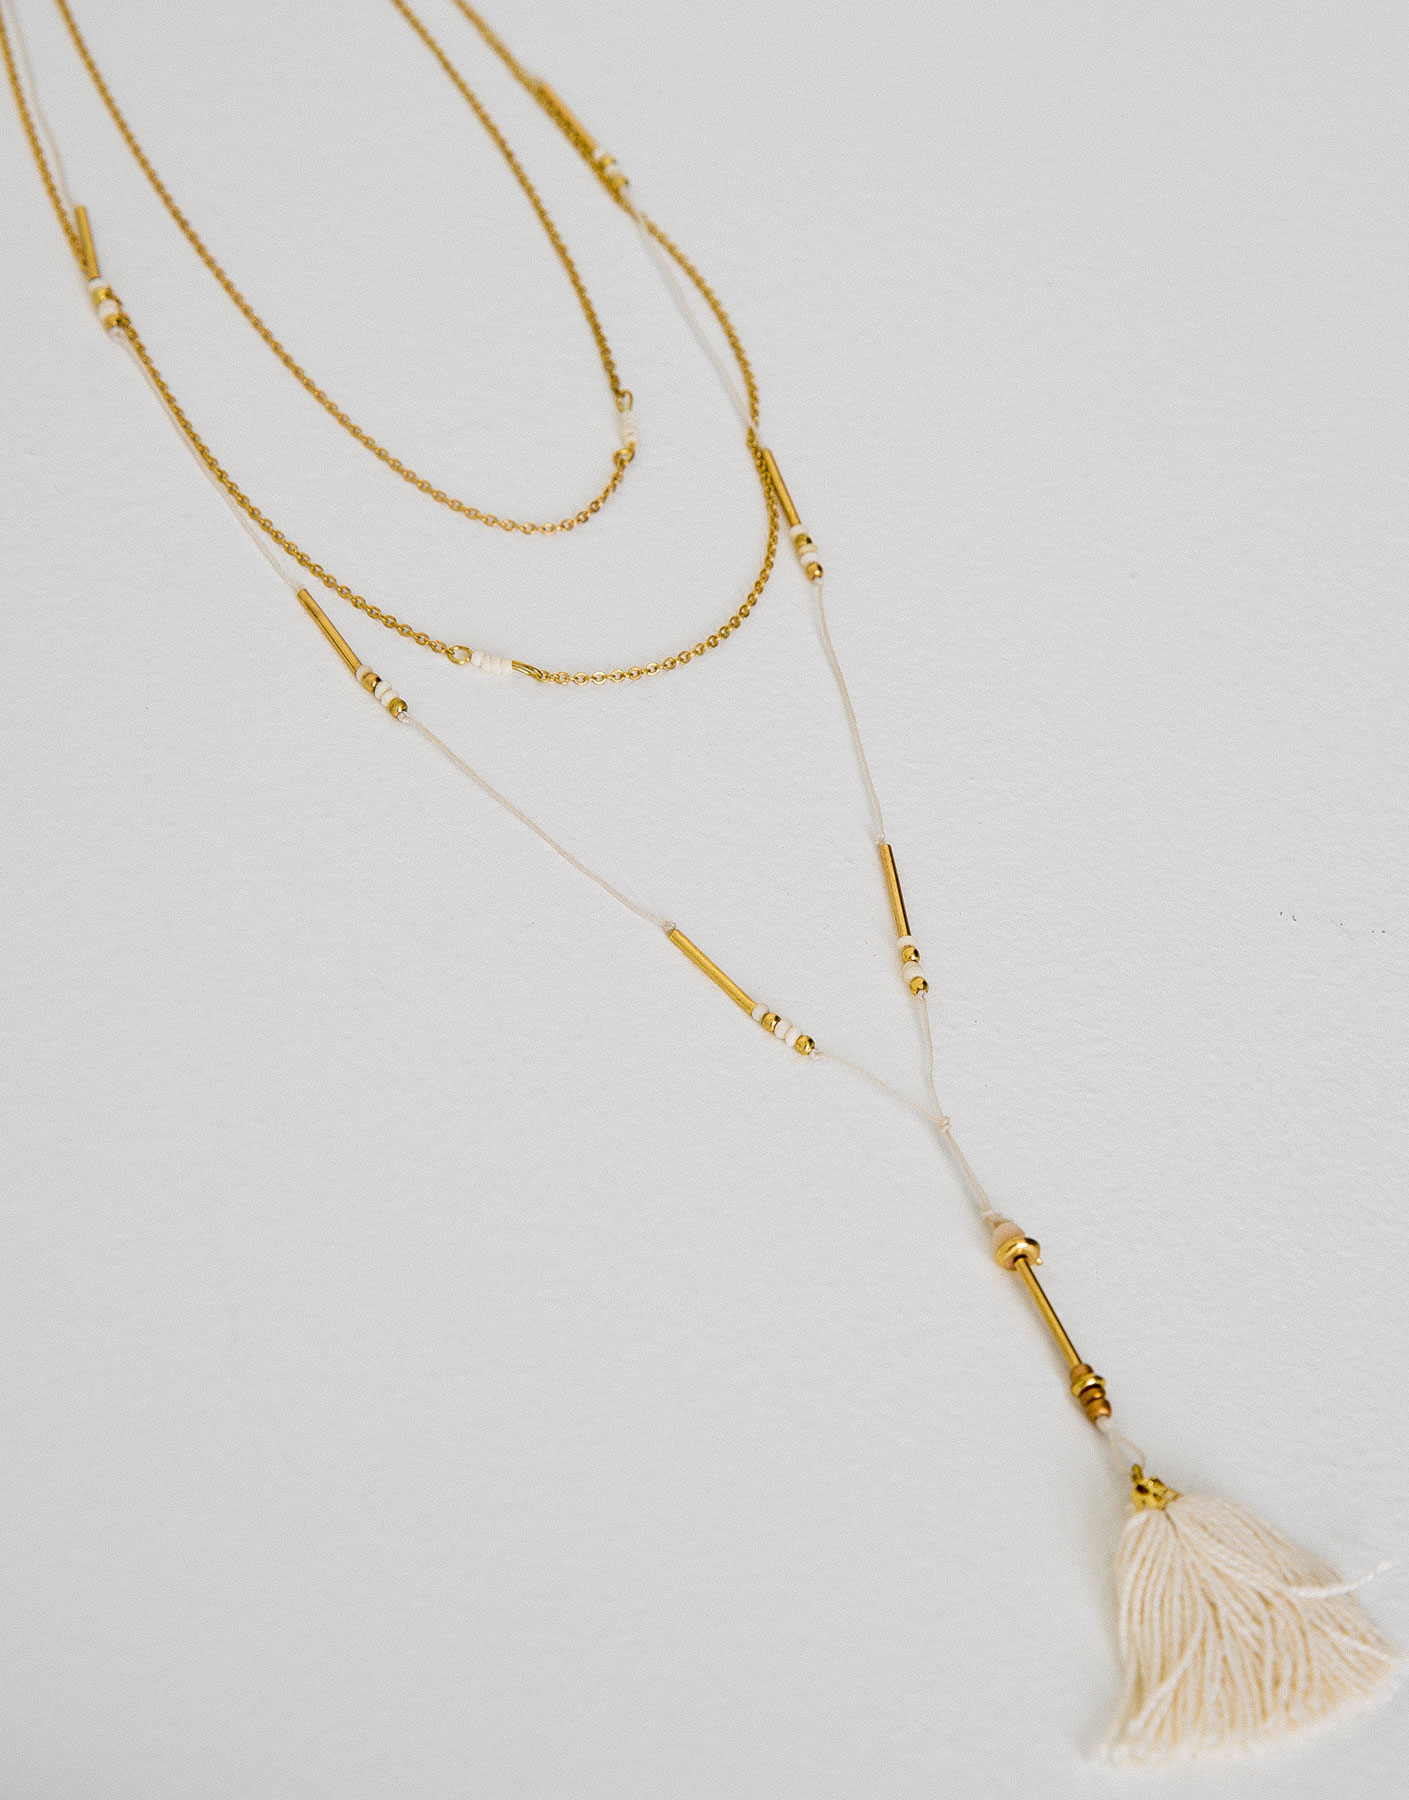 Chain and thread necklace